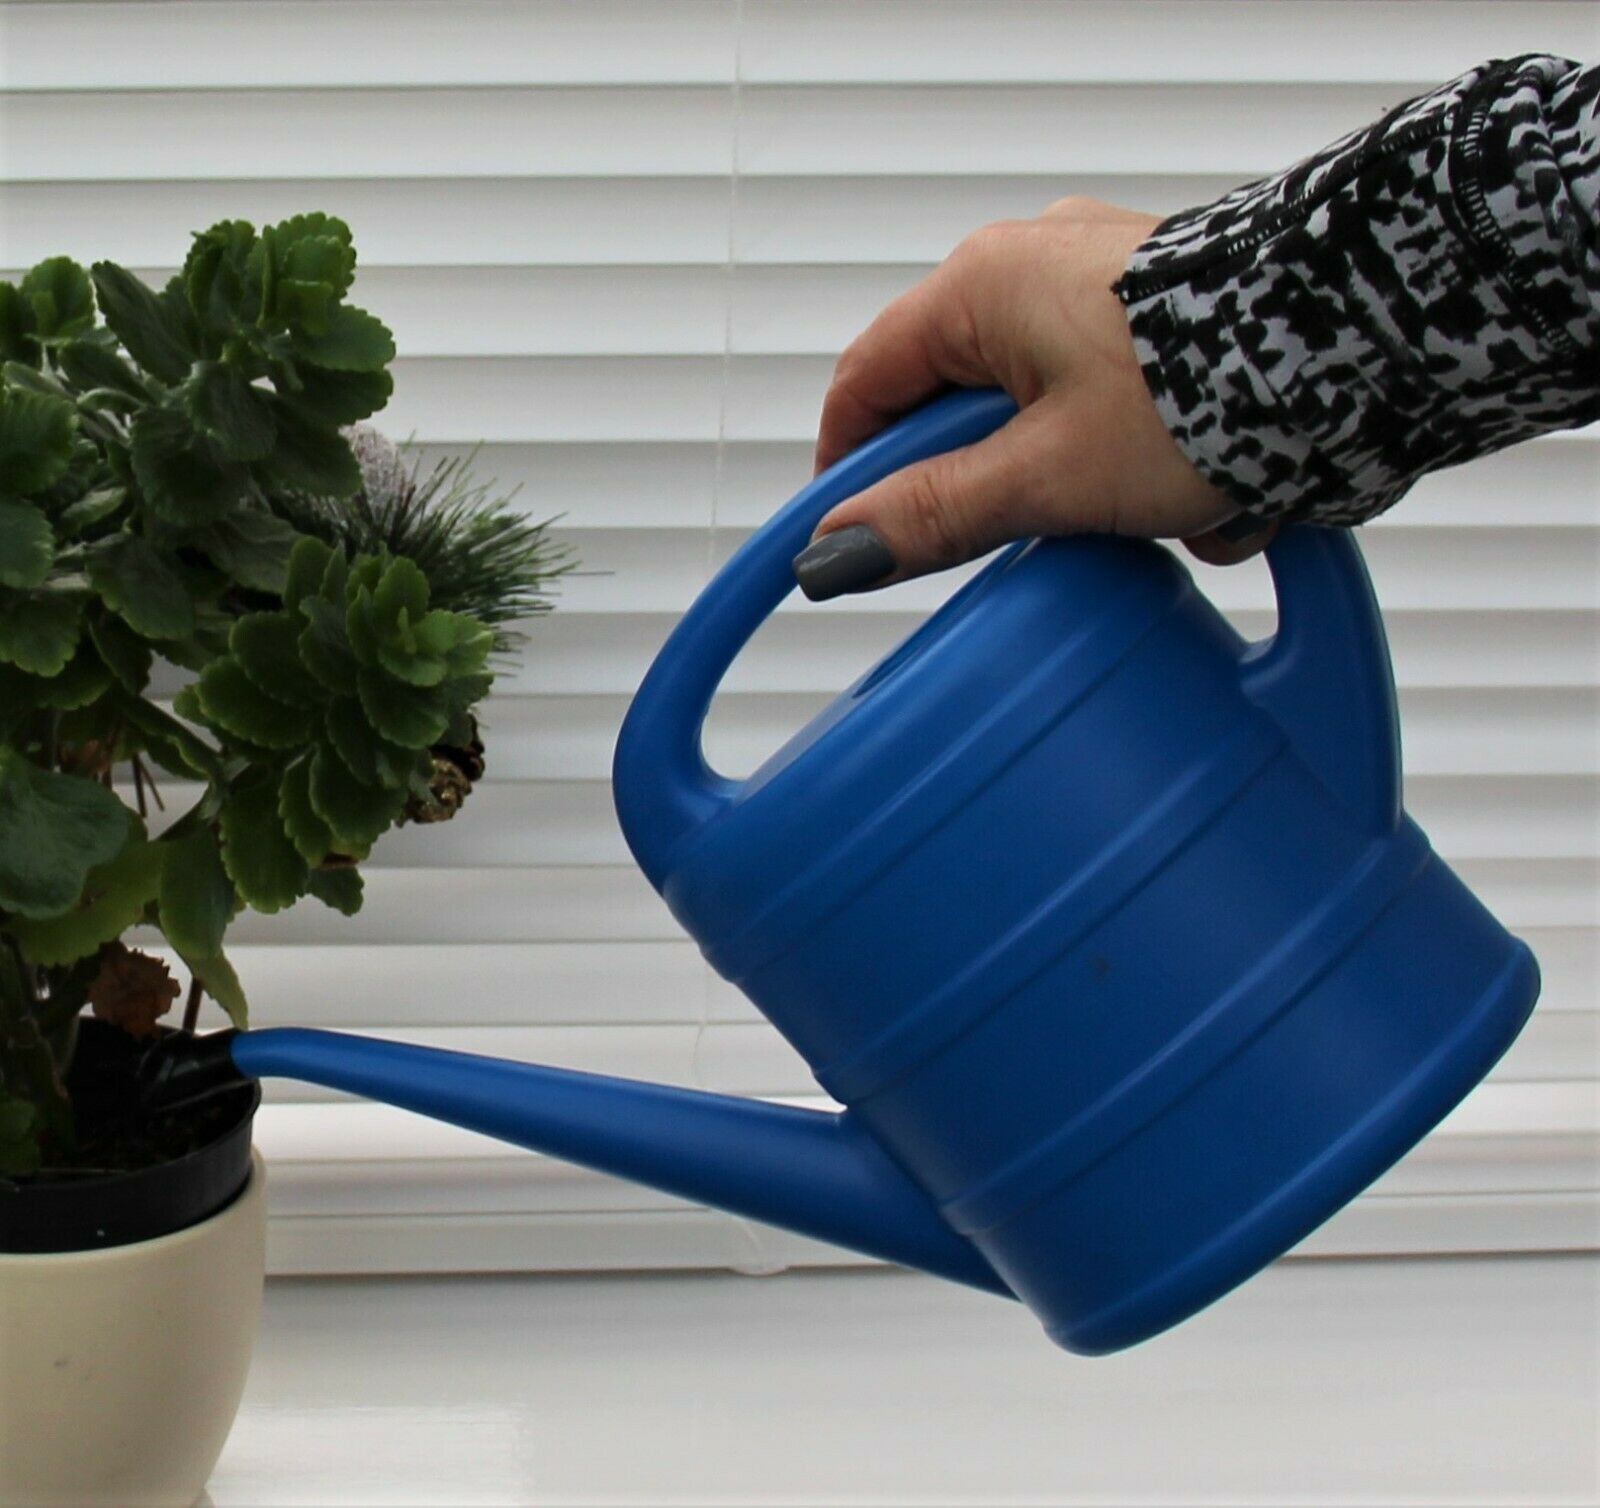 Watering Can Indoor Long Spout Garden Plants Grey Plastic In/Out 1 Ltr